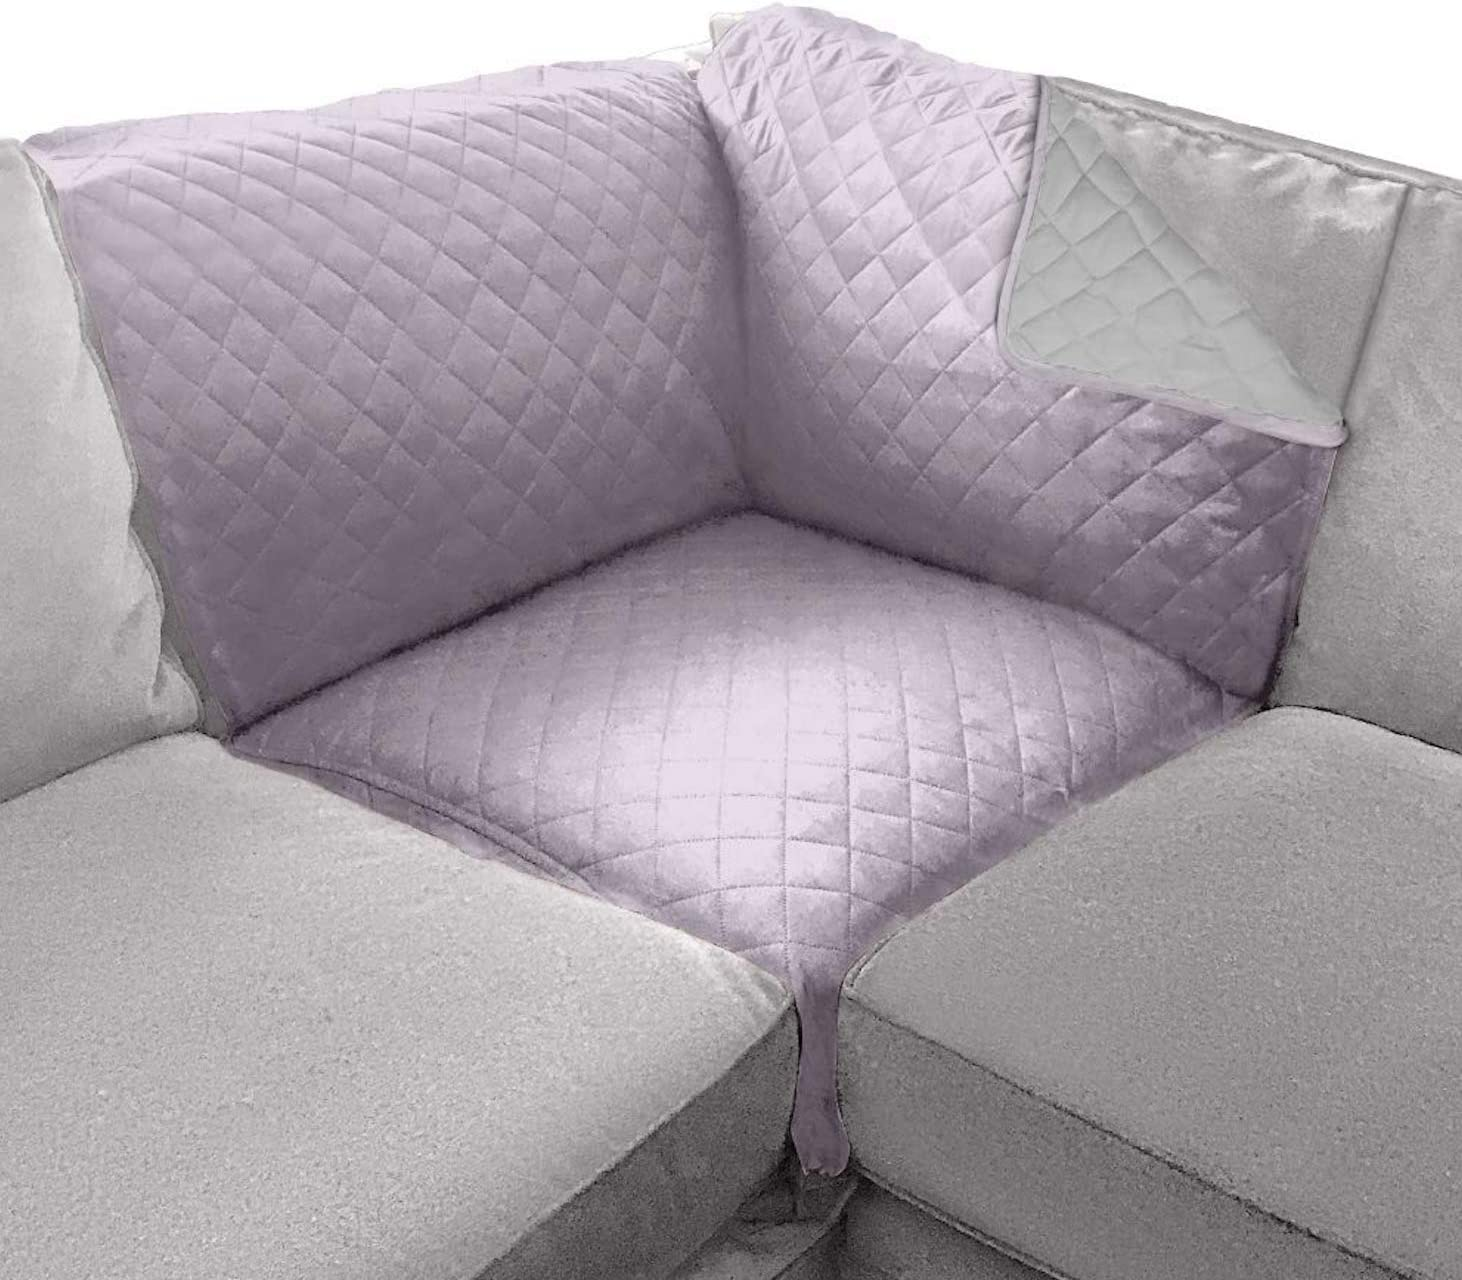 Sofa Shield Original Patent Pending Reversible Sofa Corner Sectional Protector, Many Colors, 30x30 Inch, Washable Furniture Protector, 2 Inch Strap, Sectional Slip Cover for Pets, Kids, Purple Lt Gray